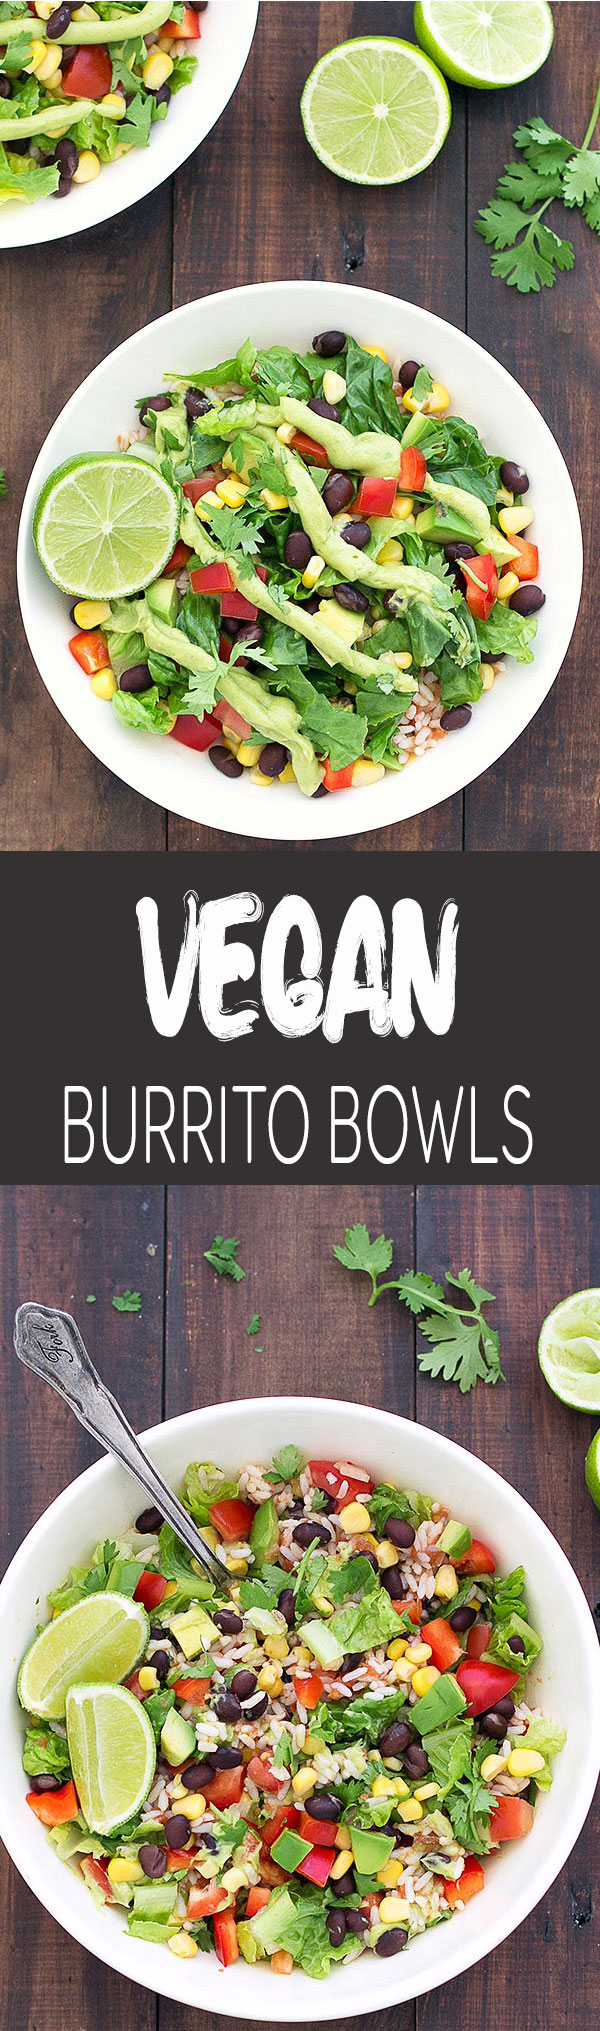 Vegan burrito salad bowls are super colorful, really easy to put together and packed with delicious Mexican flavor! Ready in 20 minutes